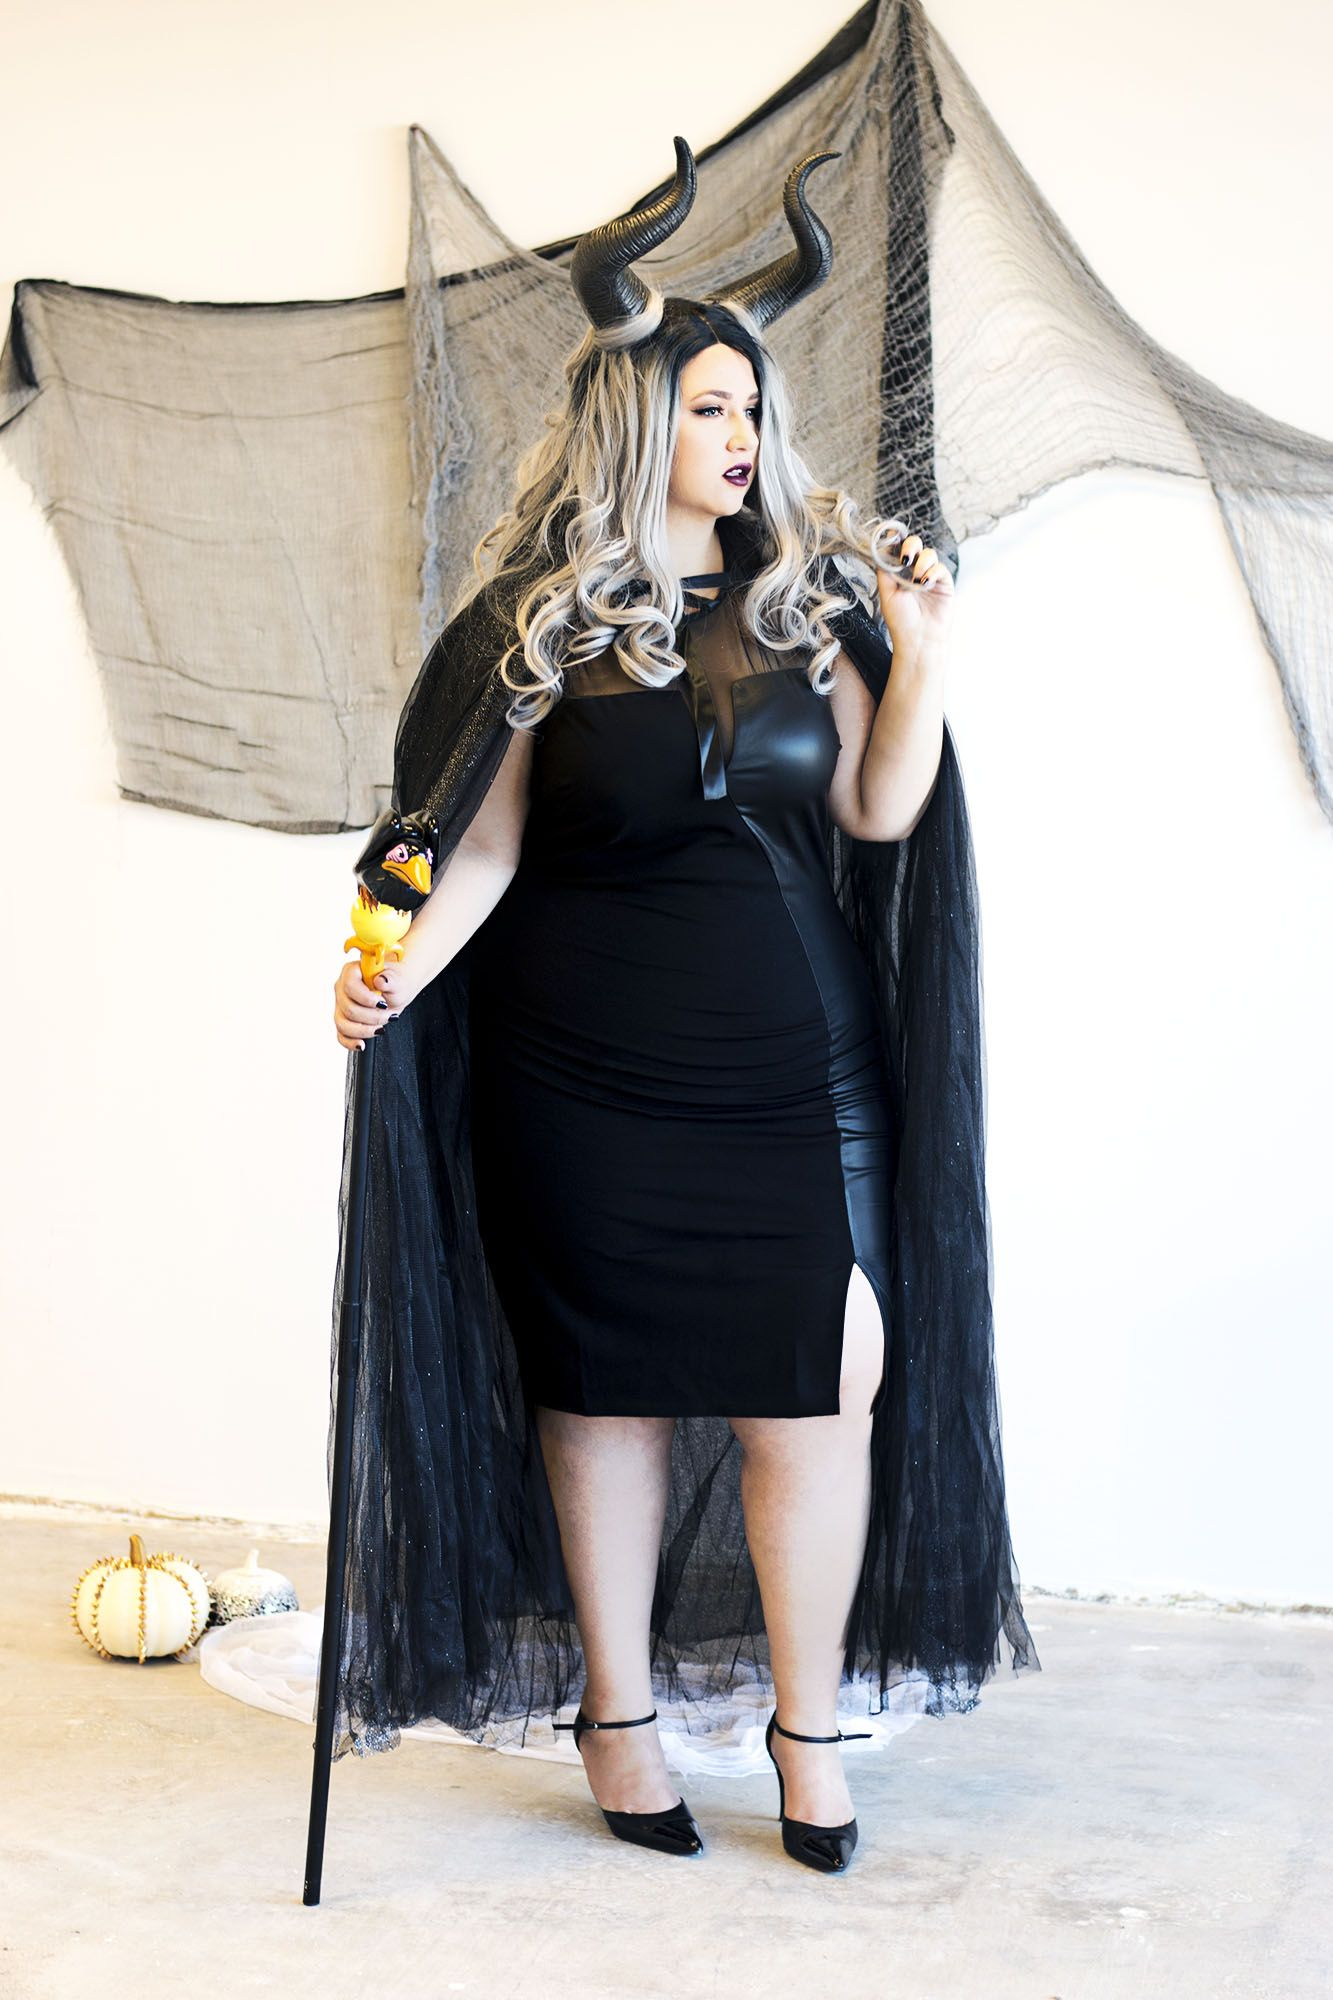 Plus Size Costume Easy Affordable Diy Fashion To Figure Ootd Crystal S Sometimes Glam